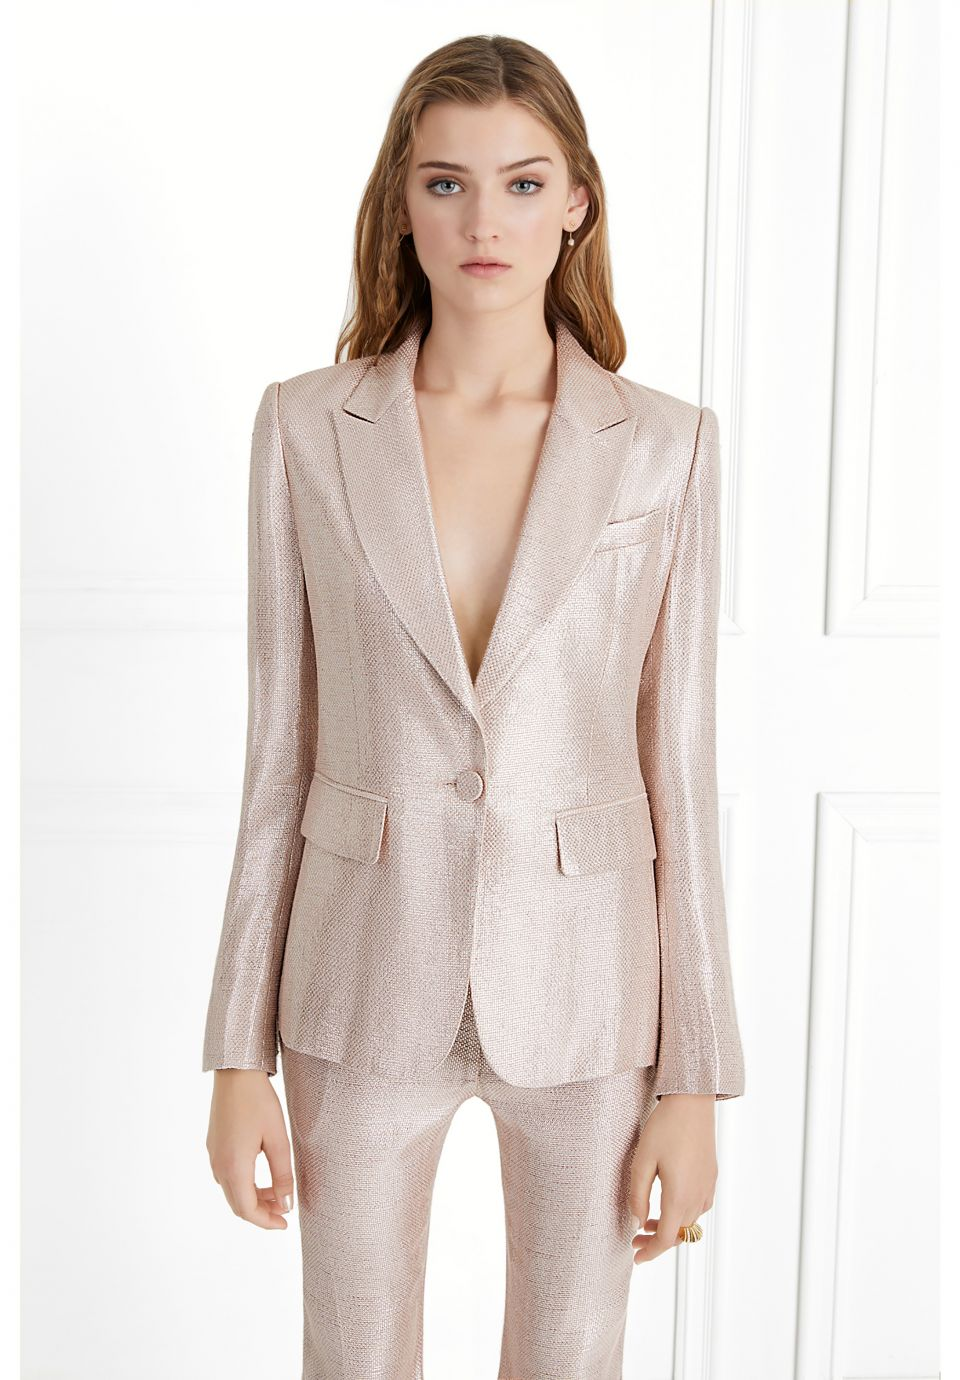 Ladies Slim Single Buckle Temperament Suit Ladies Business Formal Wear Custom Womens Suit Two-piece Suit jacket + Pants